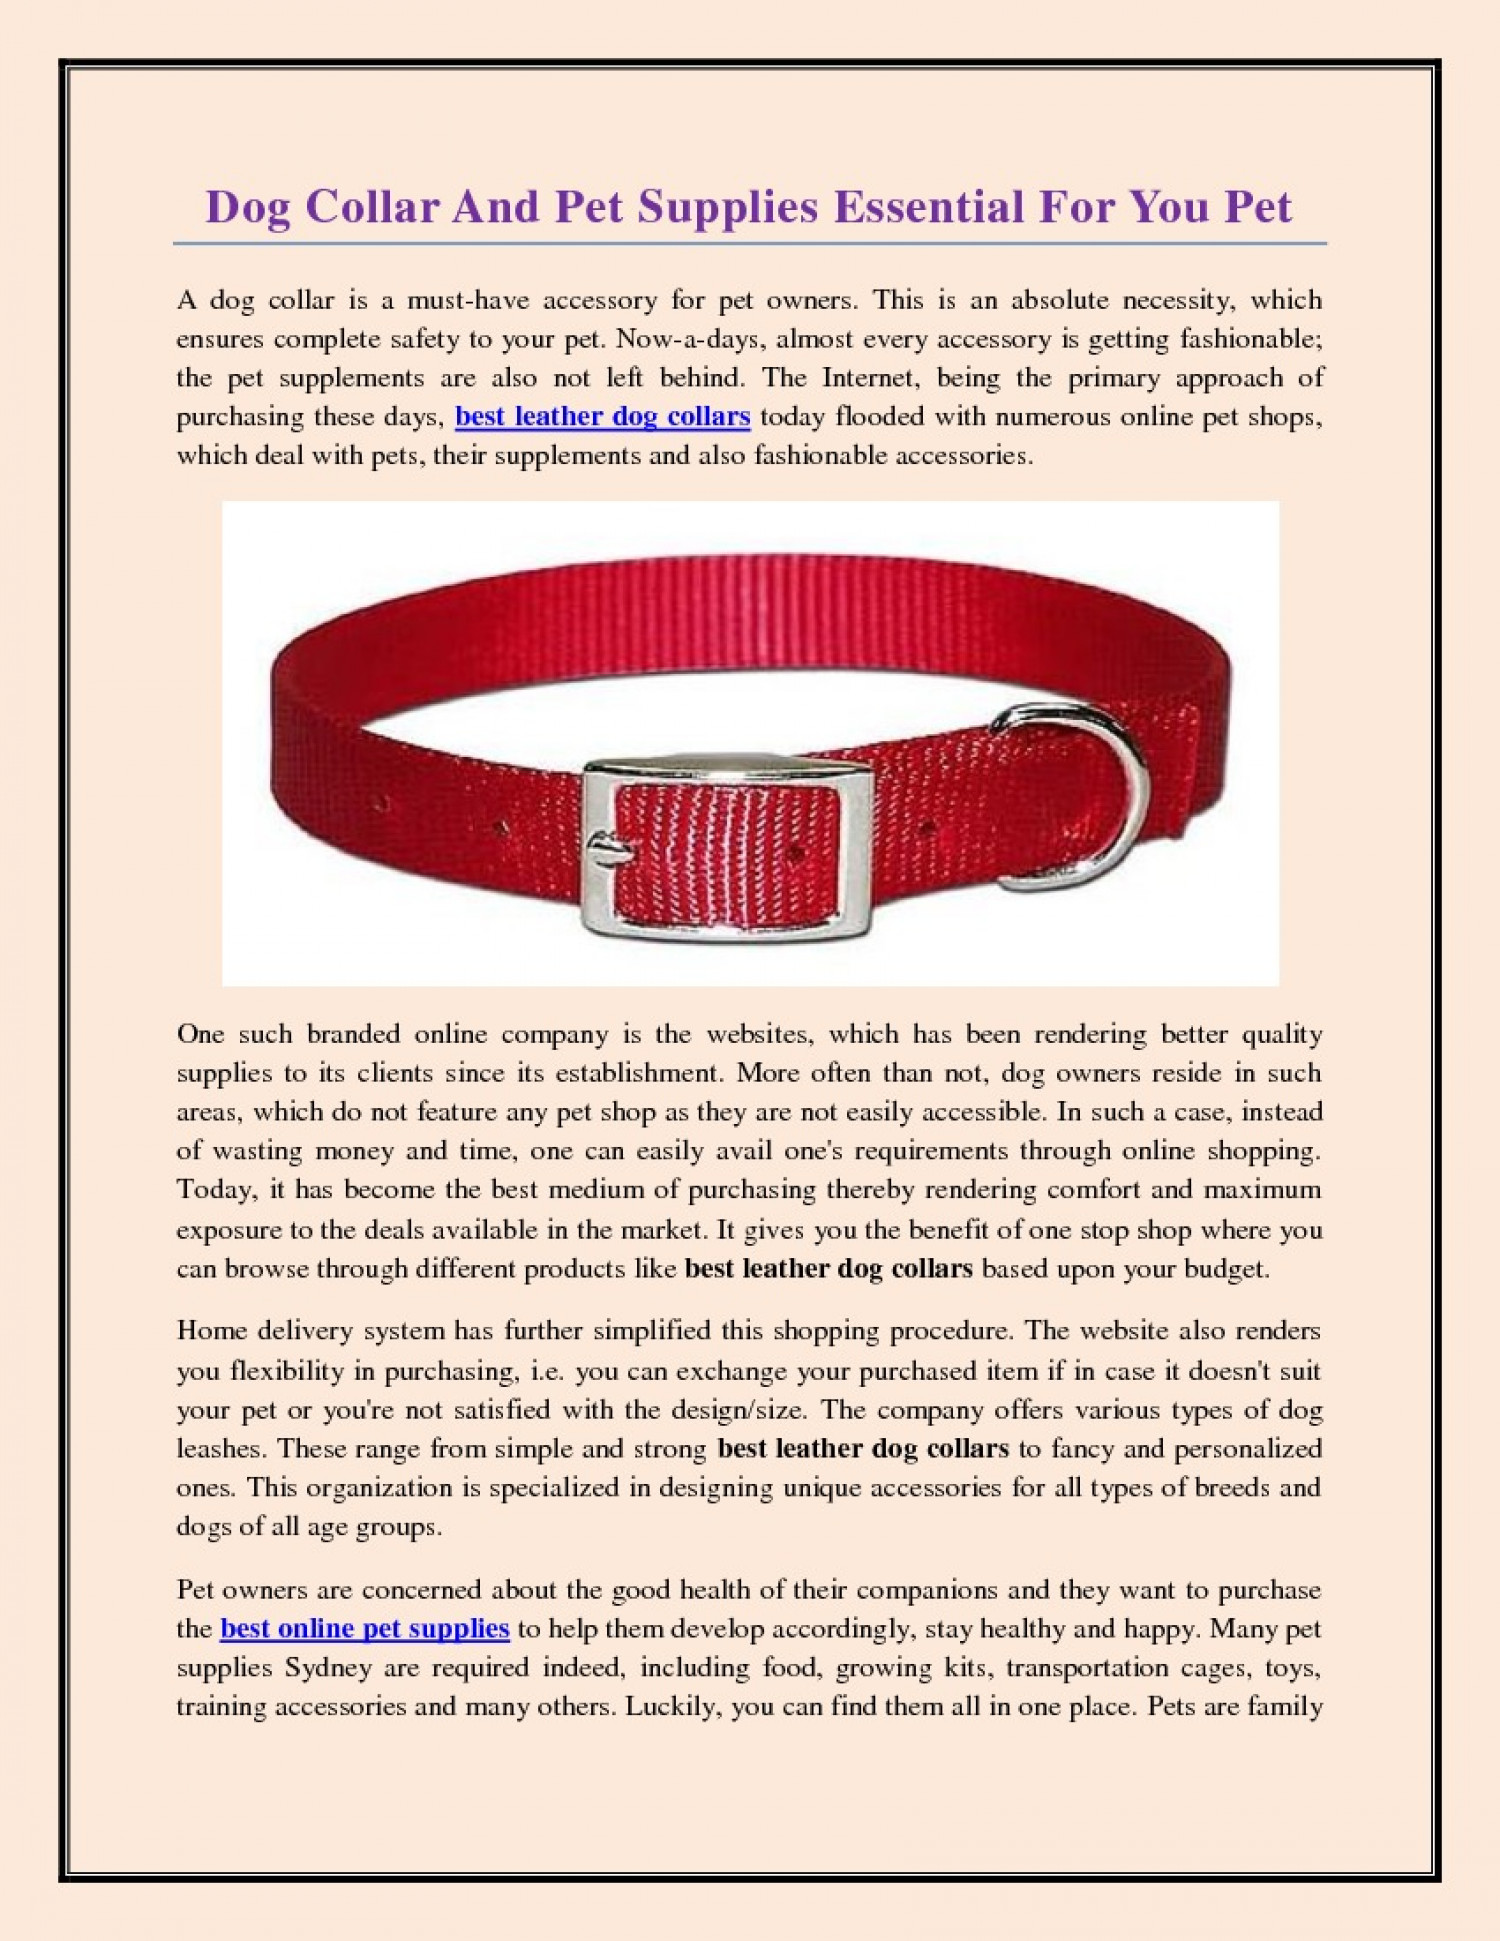 Dog Collar And Pet Supplies Essential For You Pet Infographic